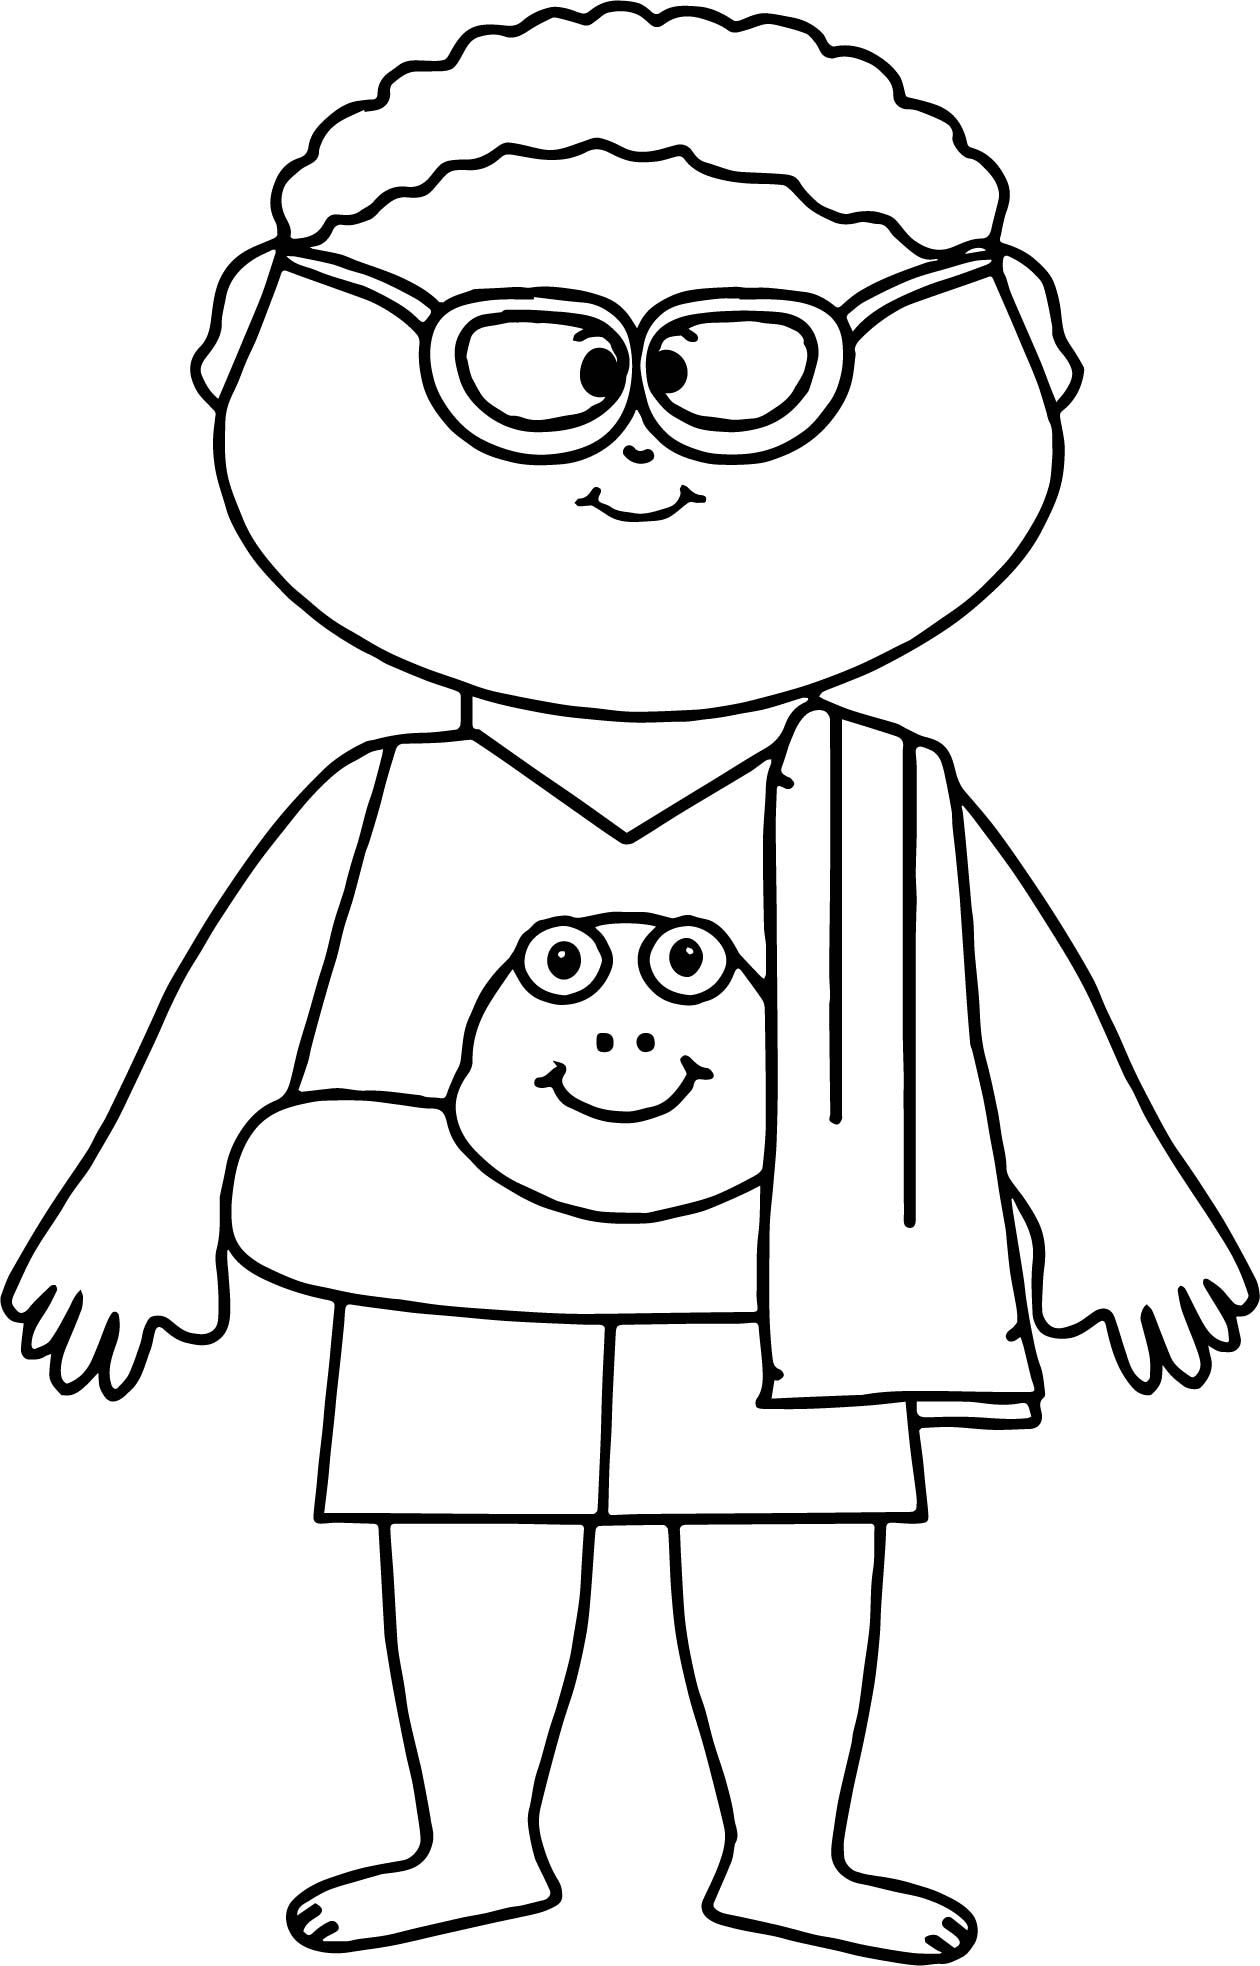 Summer Boy Coloring Page Coloring Pages For Boys New Year Coloring Pages Boy Coloring